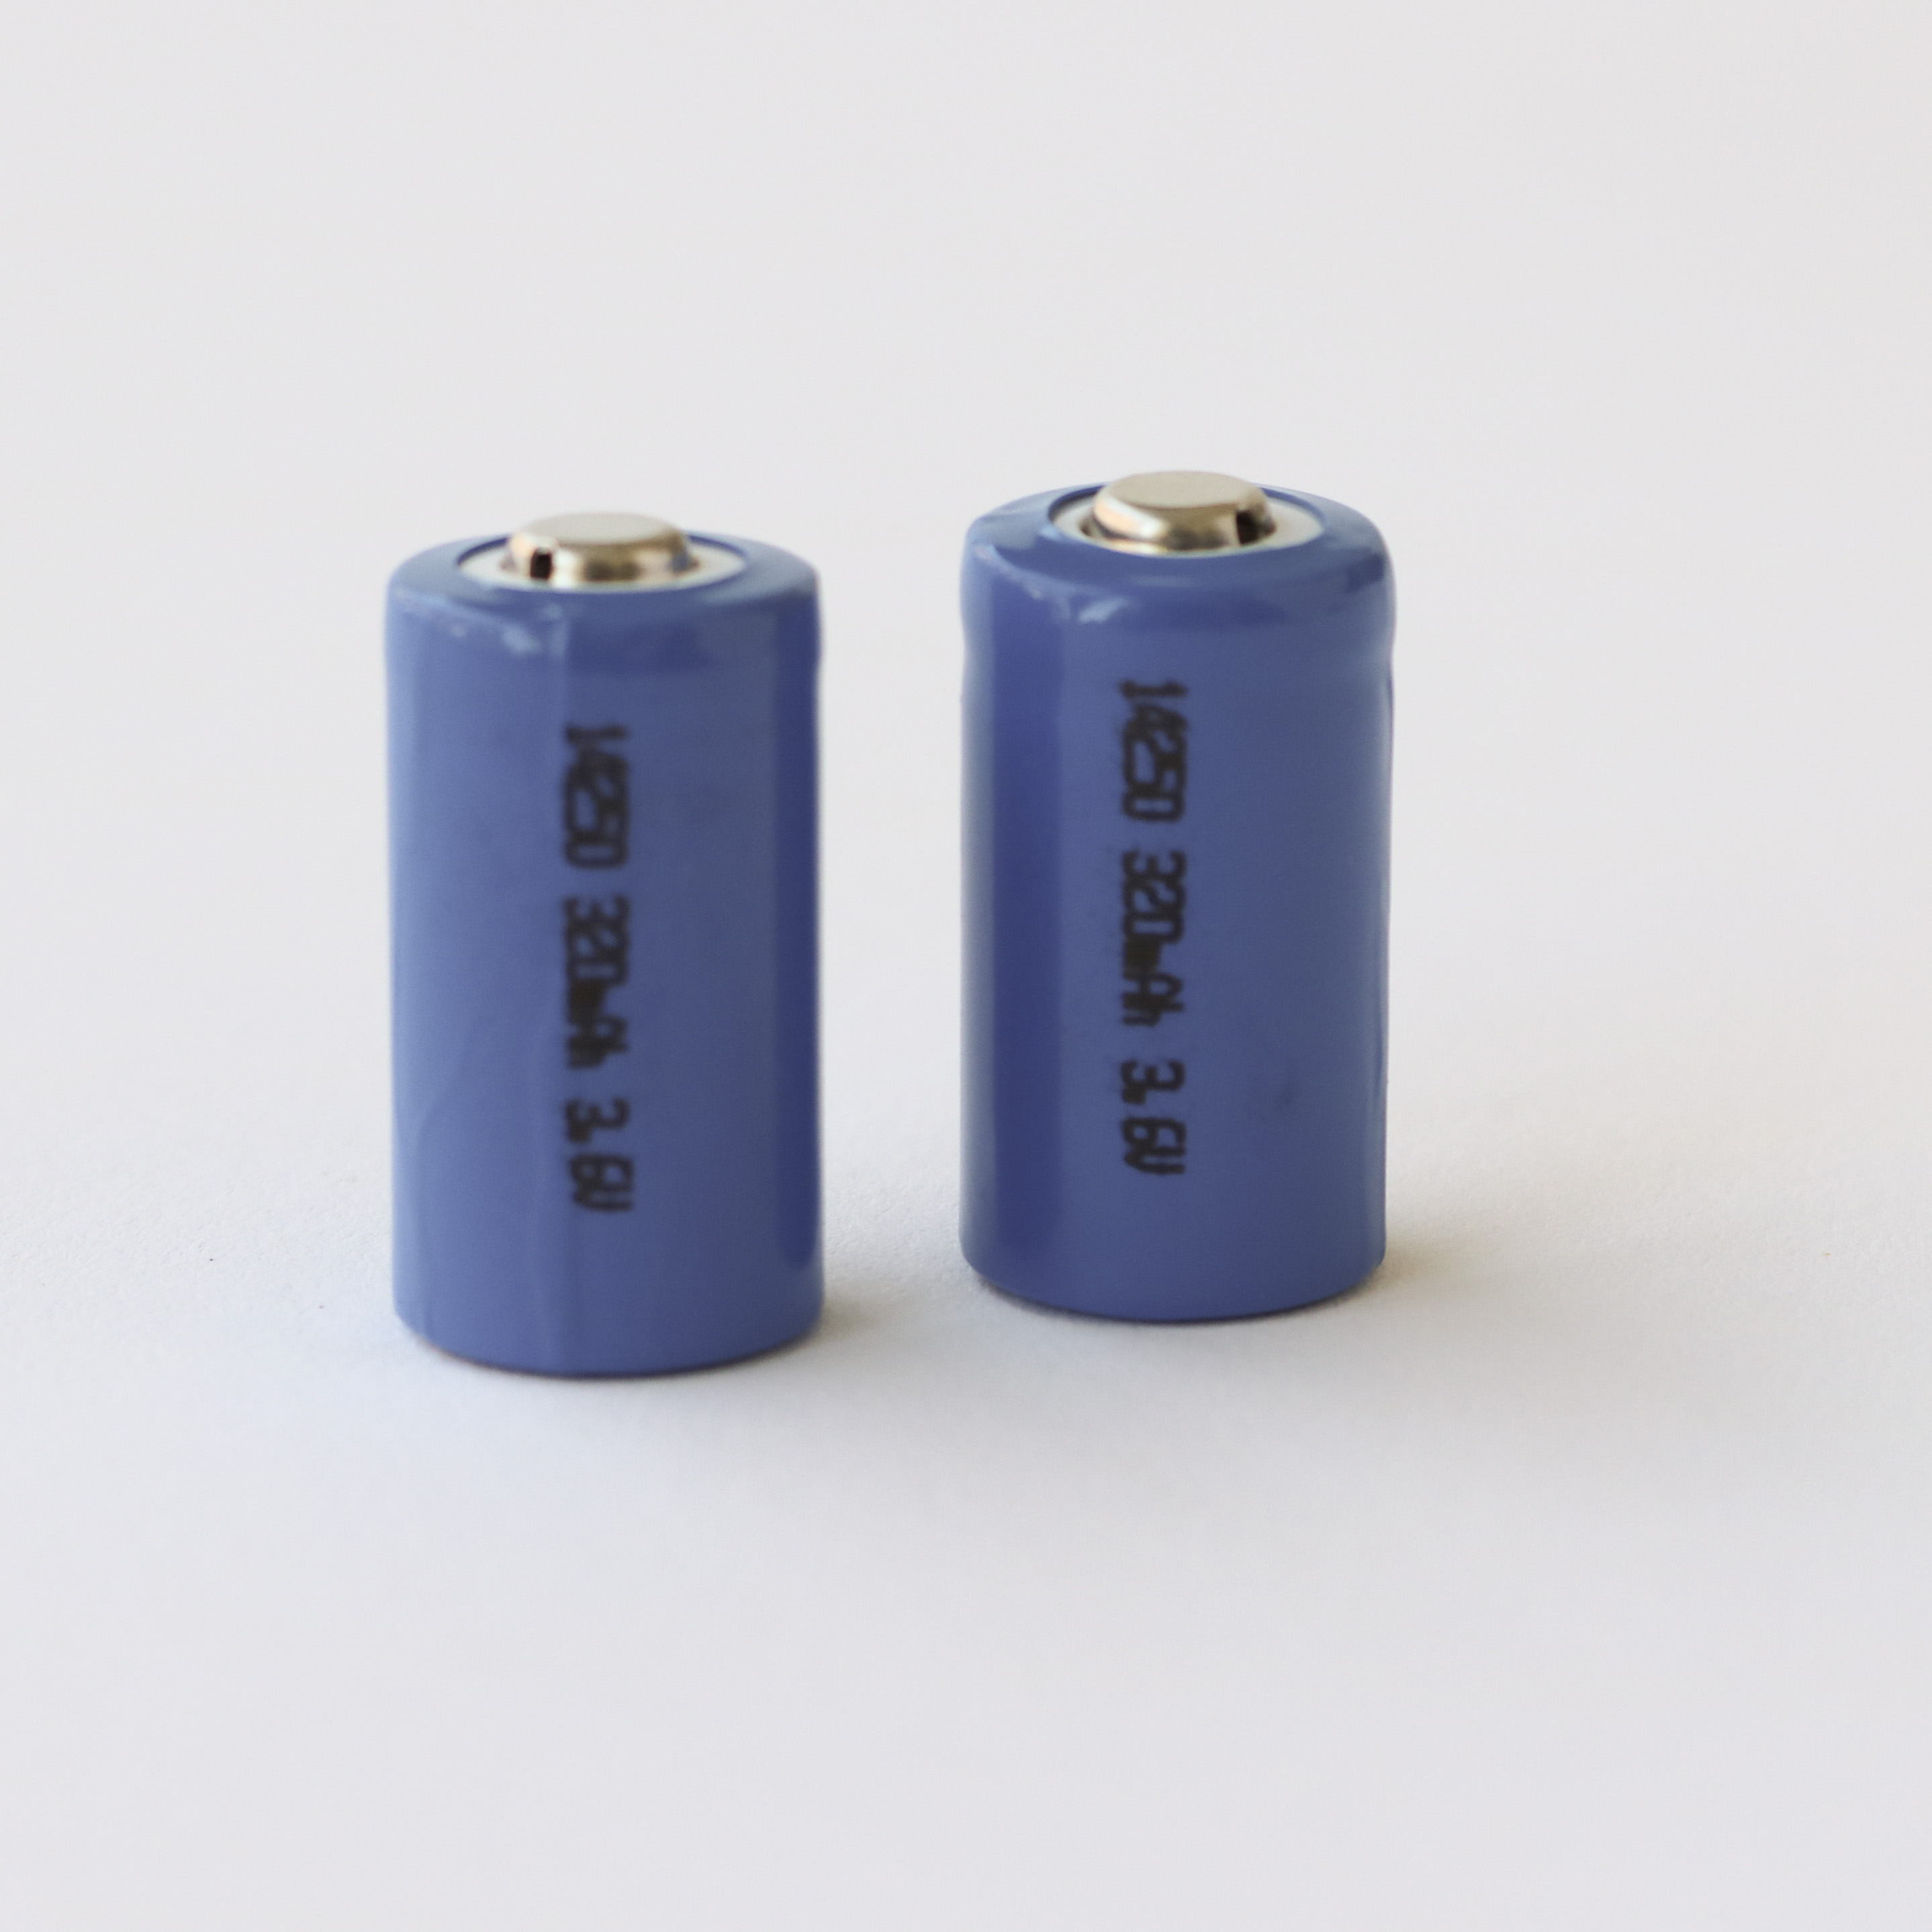 Lithium Ion Battery >> Rechargeable Lithium Ion Batteries Fetb